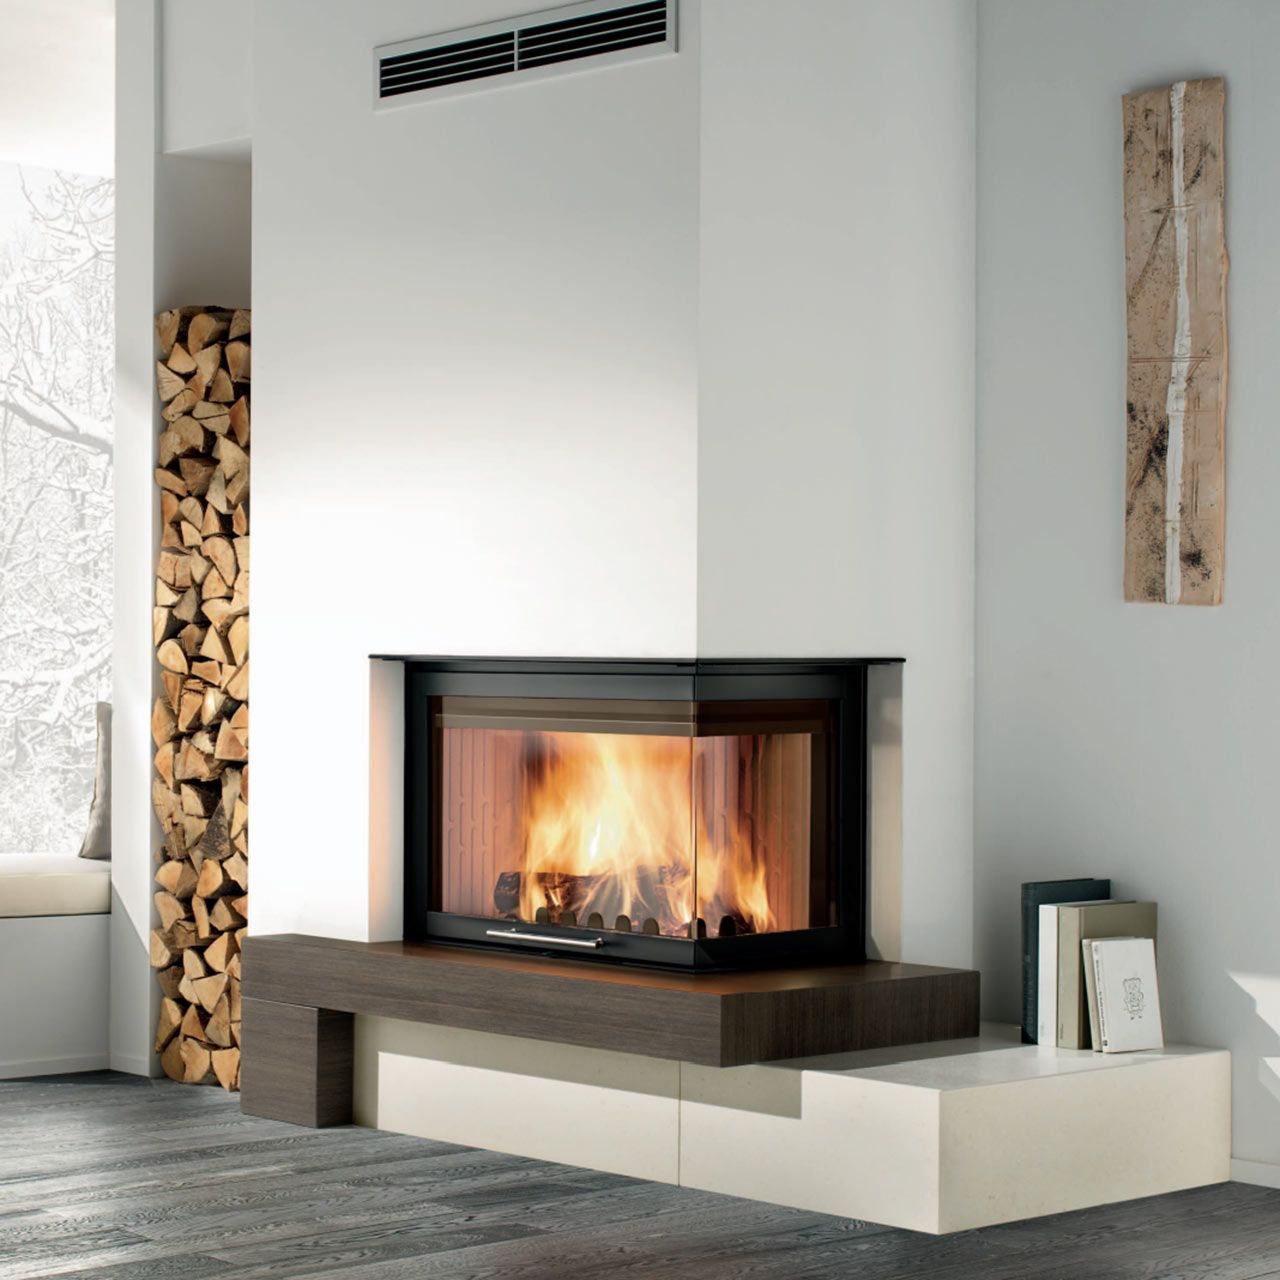 sleek freestanding fireplaces designed by malm freestanding